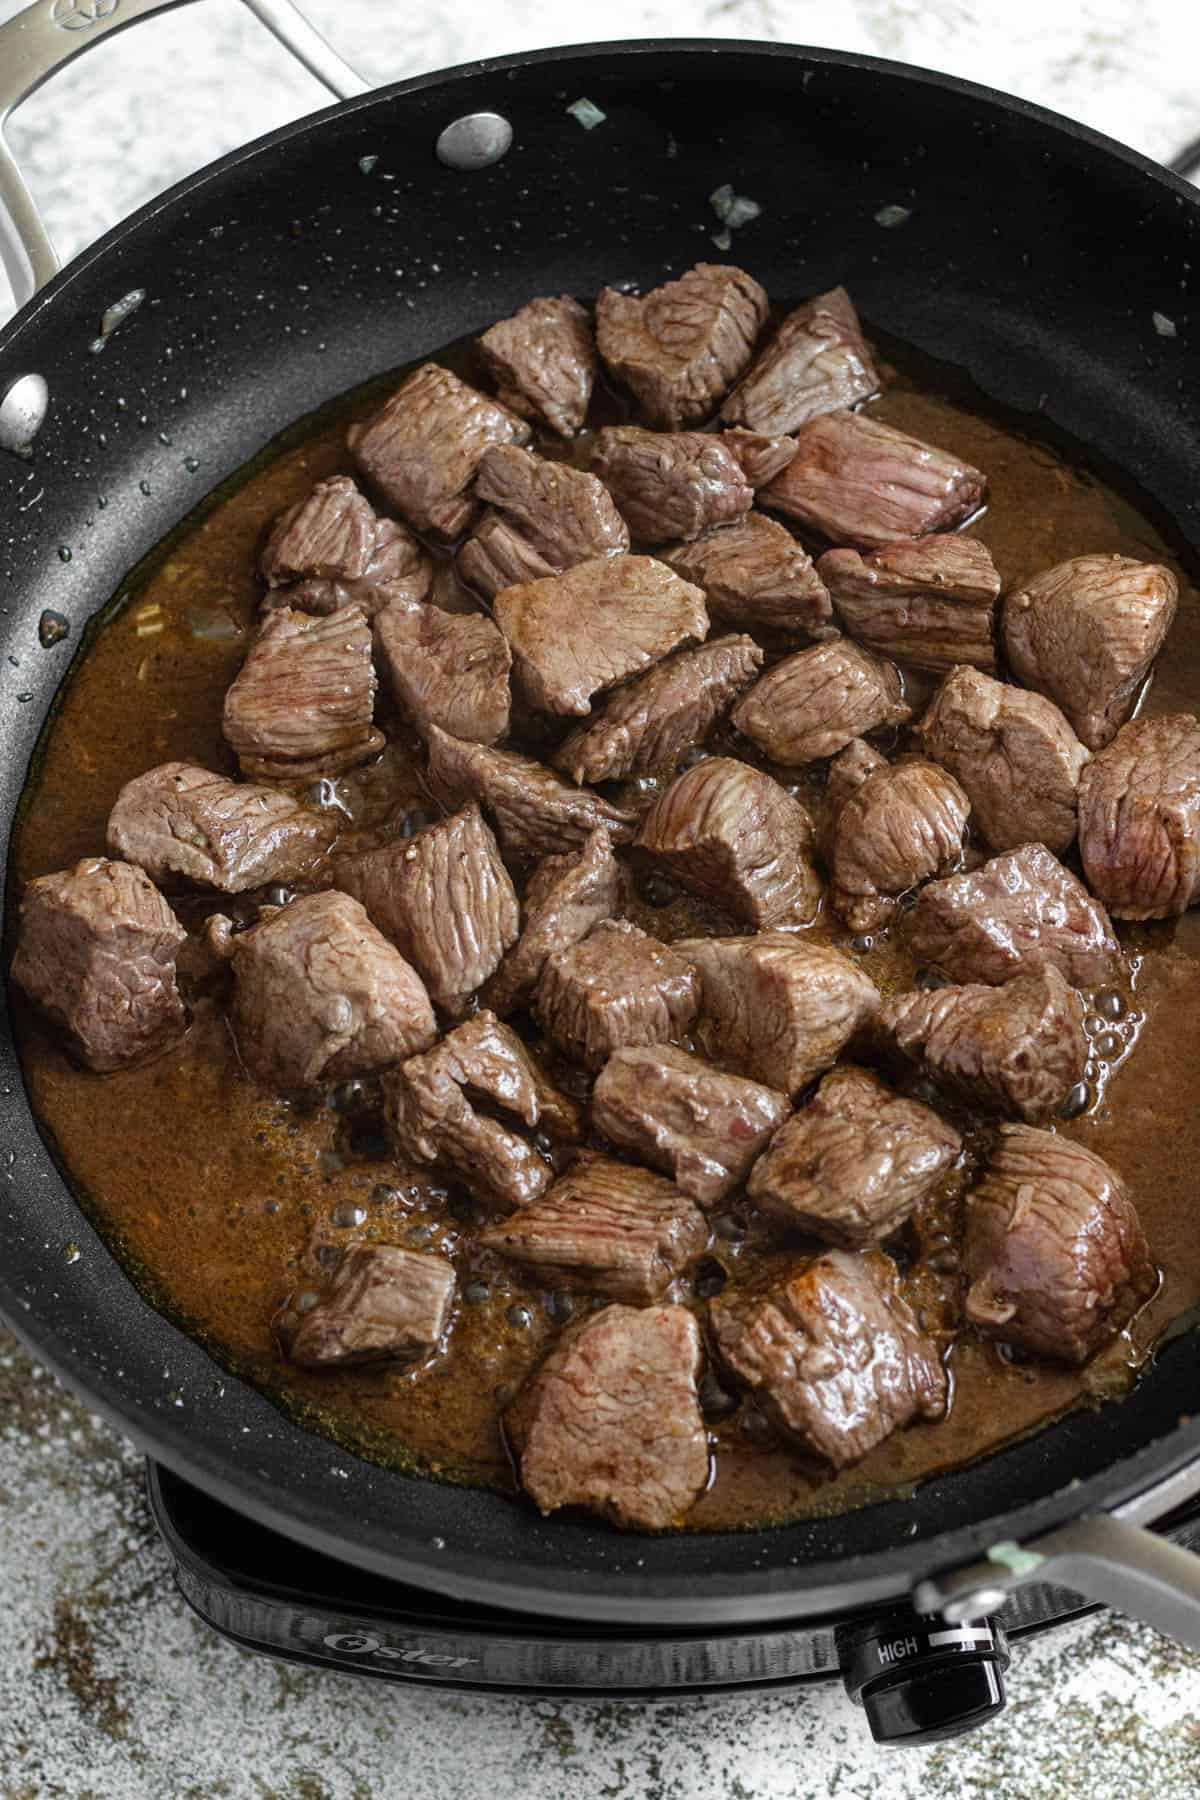 Cooked lamb in a pan with ghee